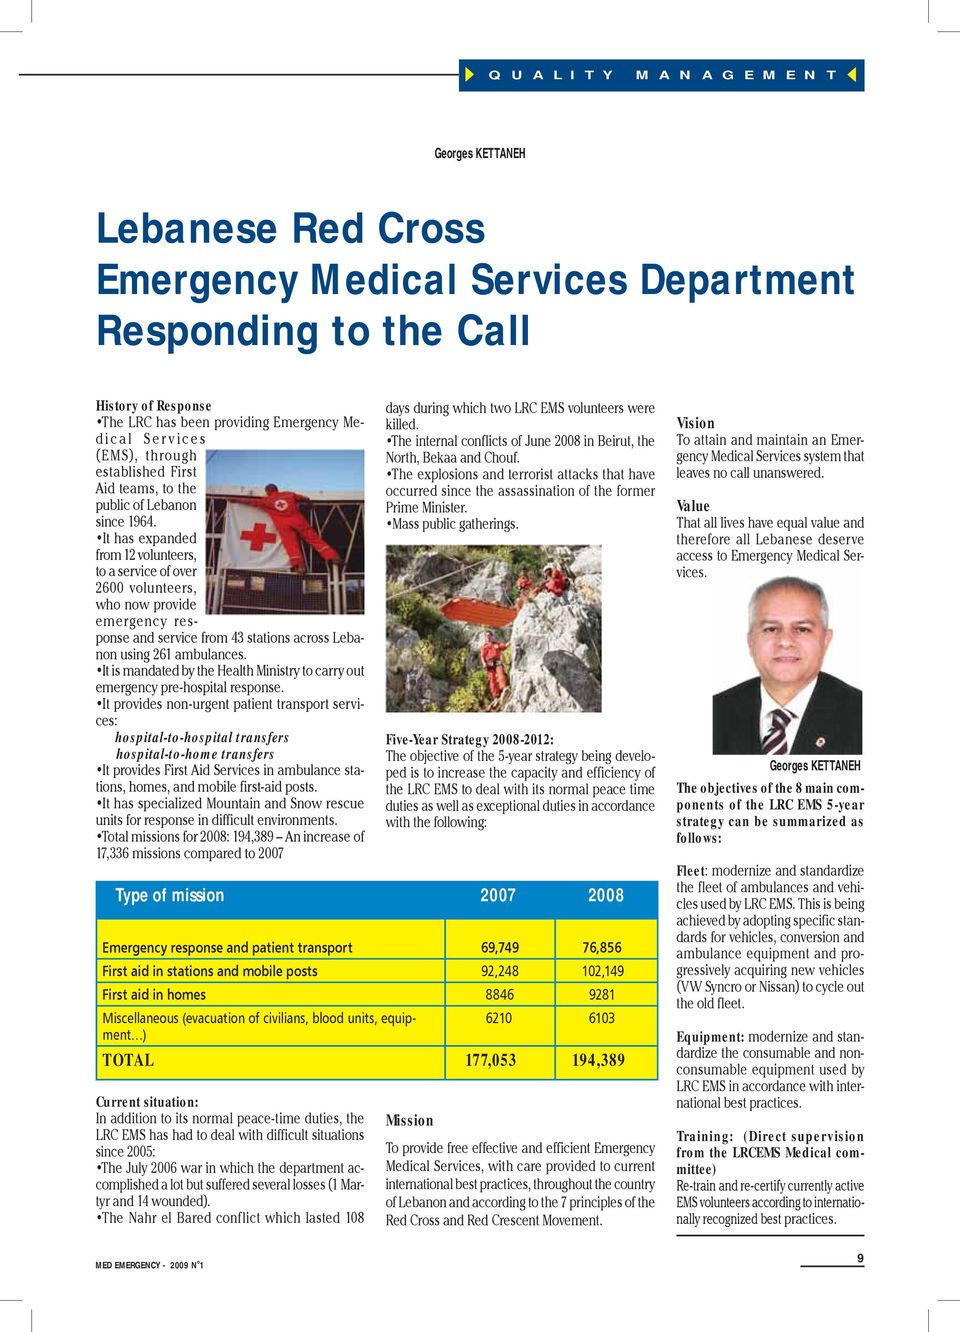 It has expanded from 12 volunteers, to a service of over 2600 volunteers, who now provide emergency response and service from 43 stations across Lebanon using 261 ambulances.